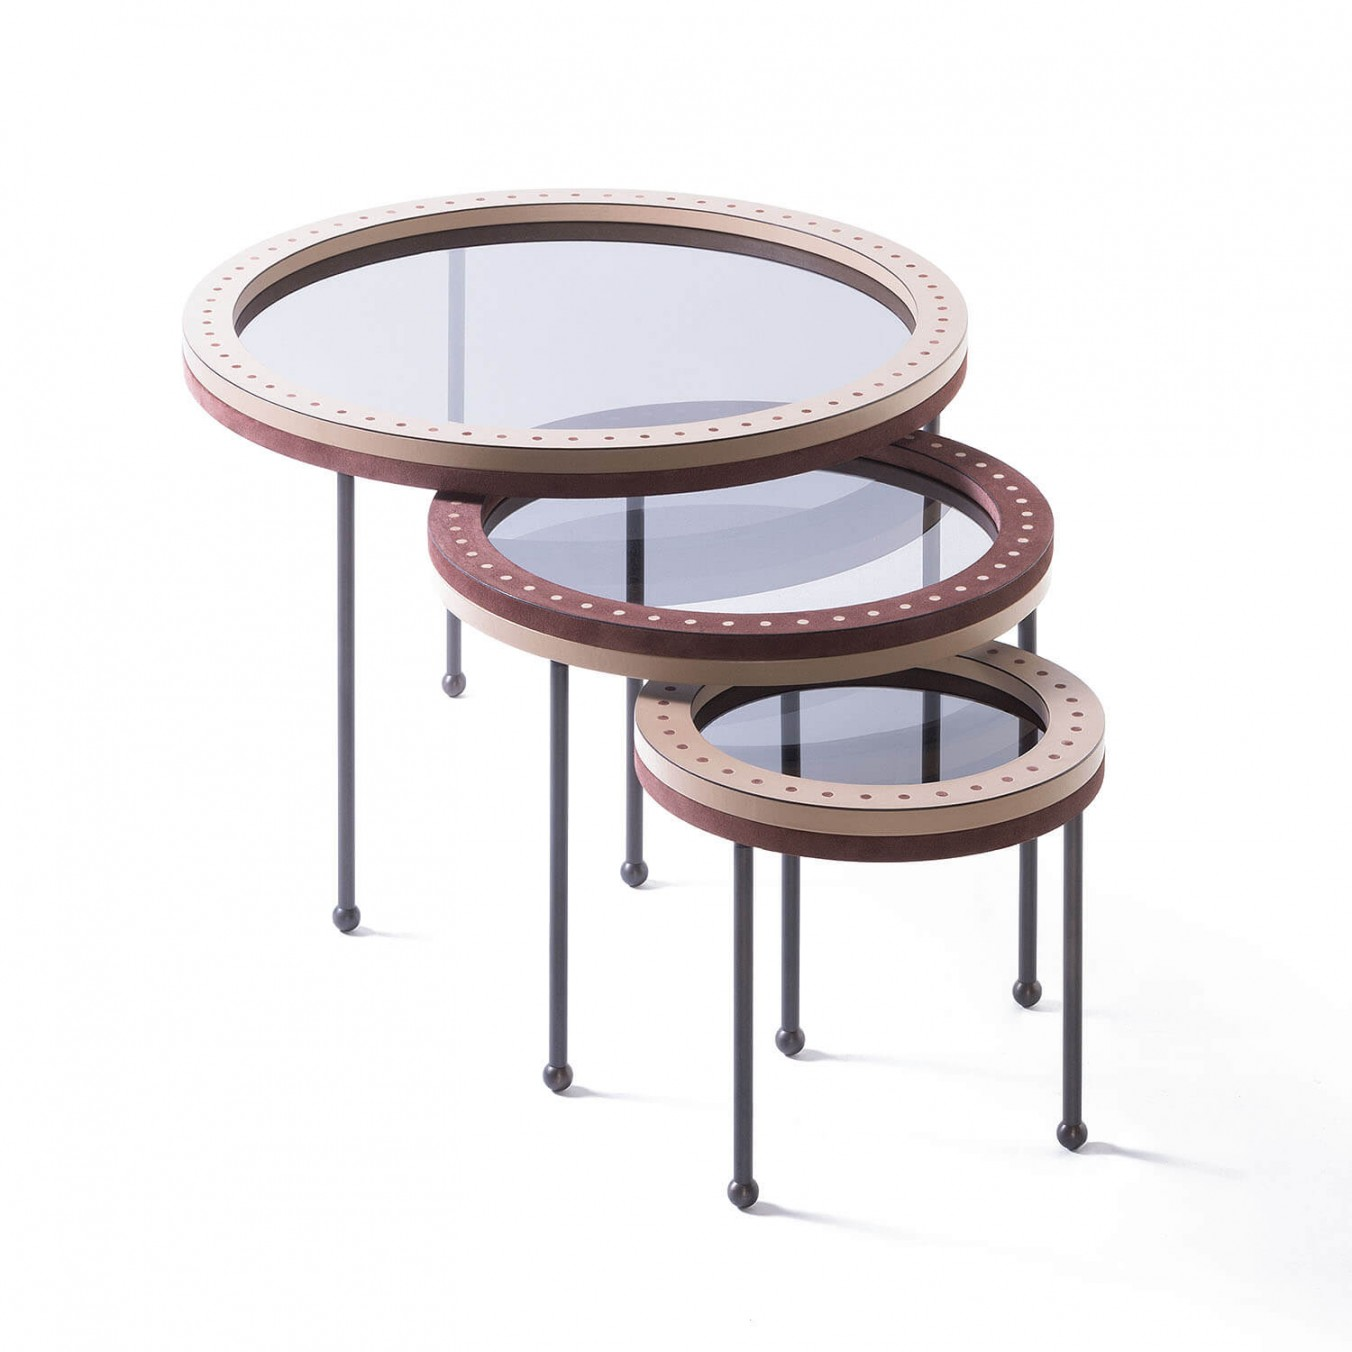 Augustus Stargate Table